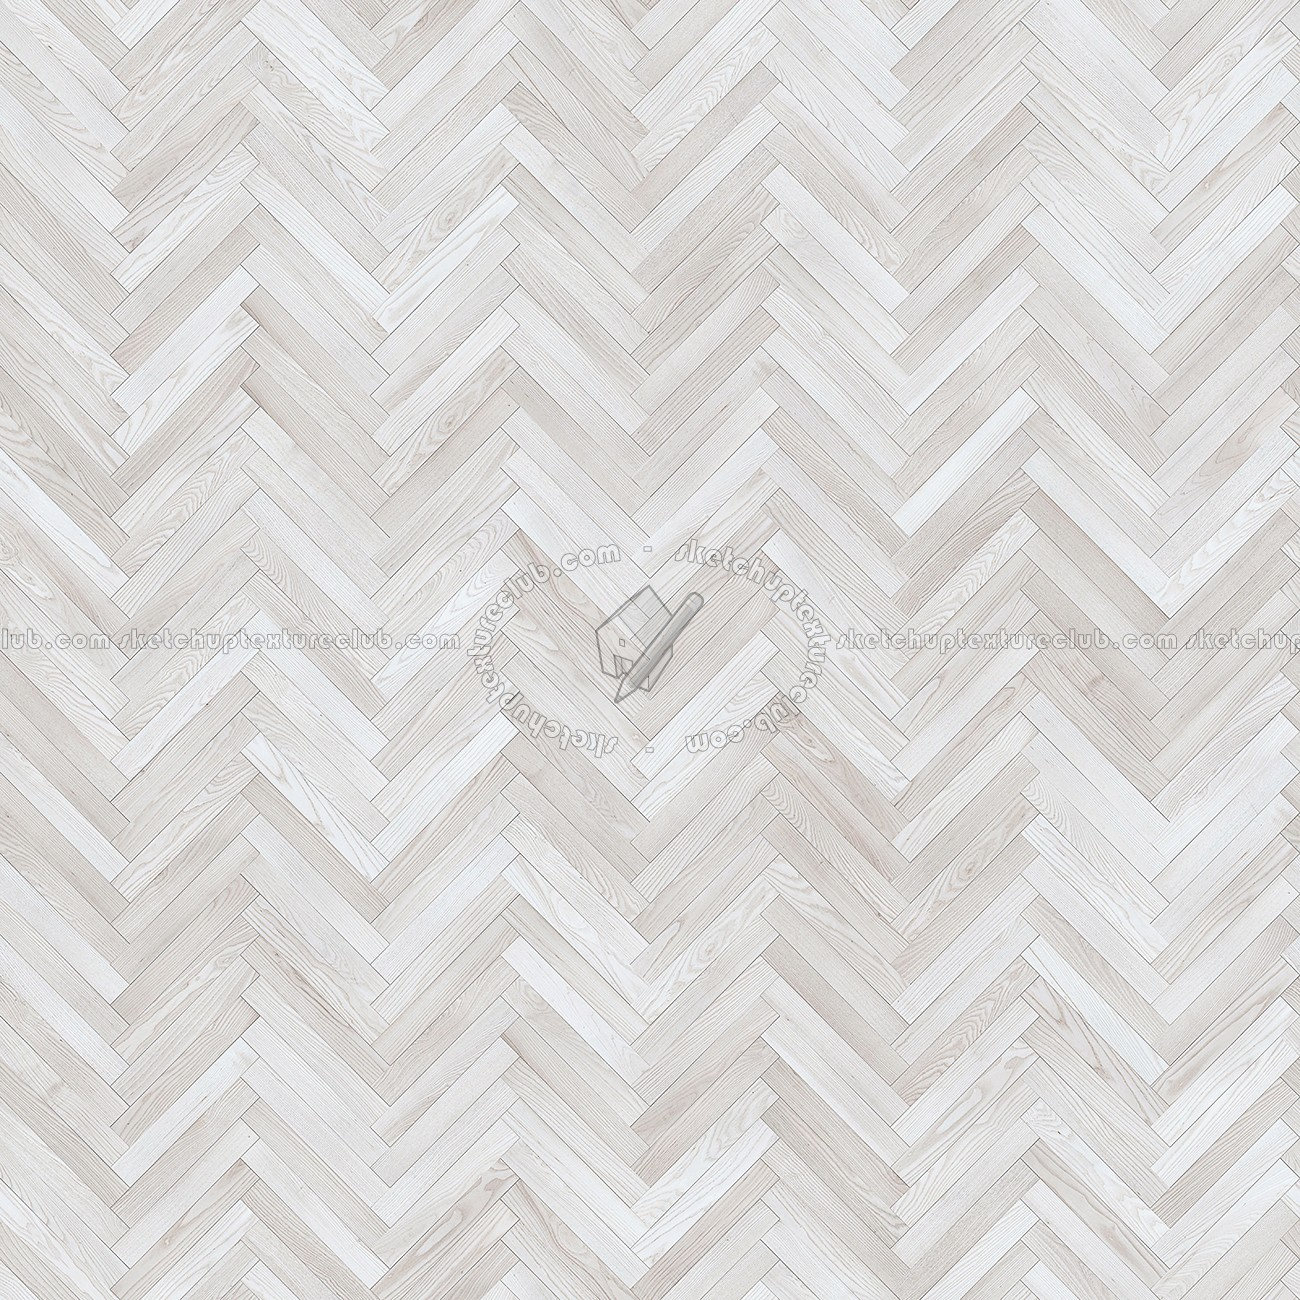 Wood Floor White Parquet Textures Seamless